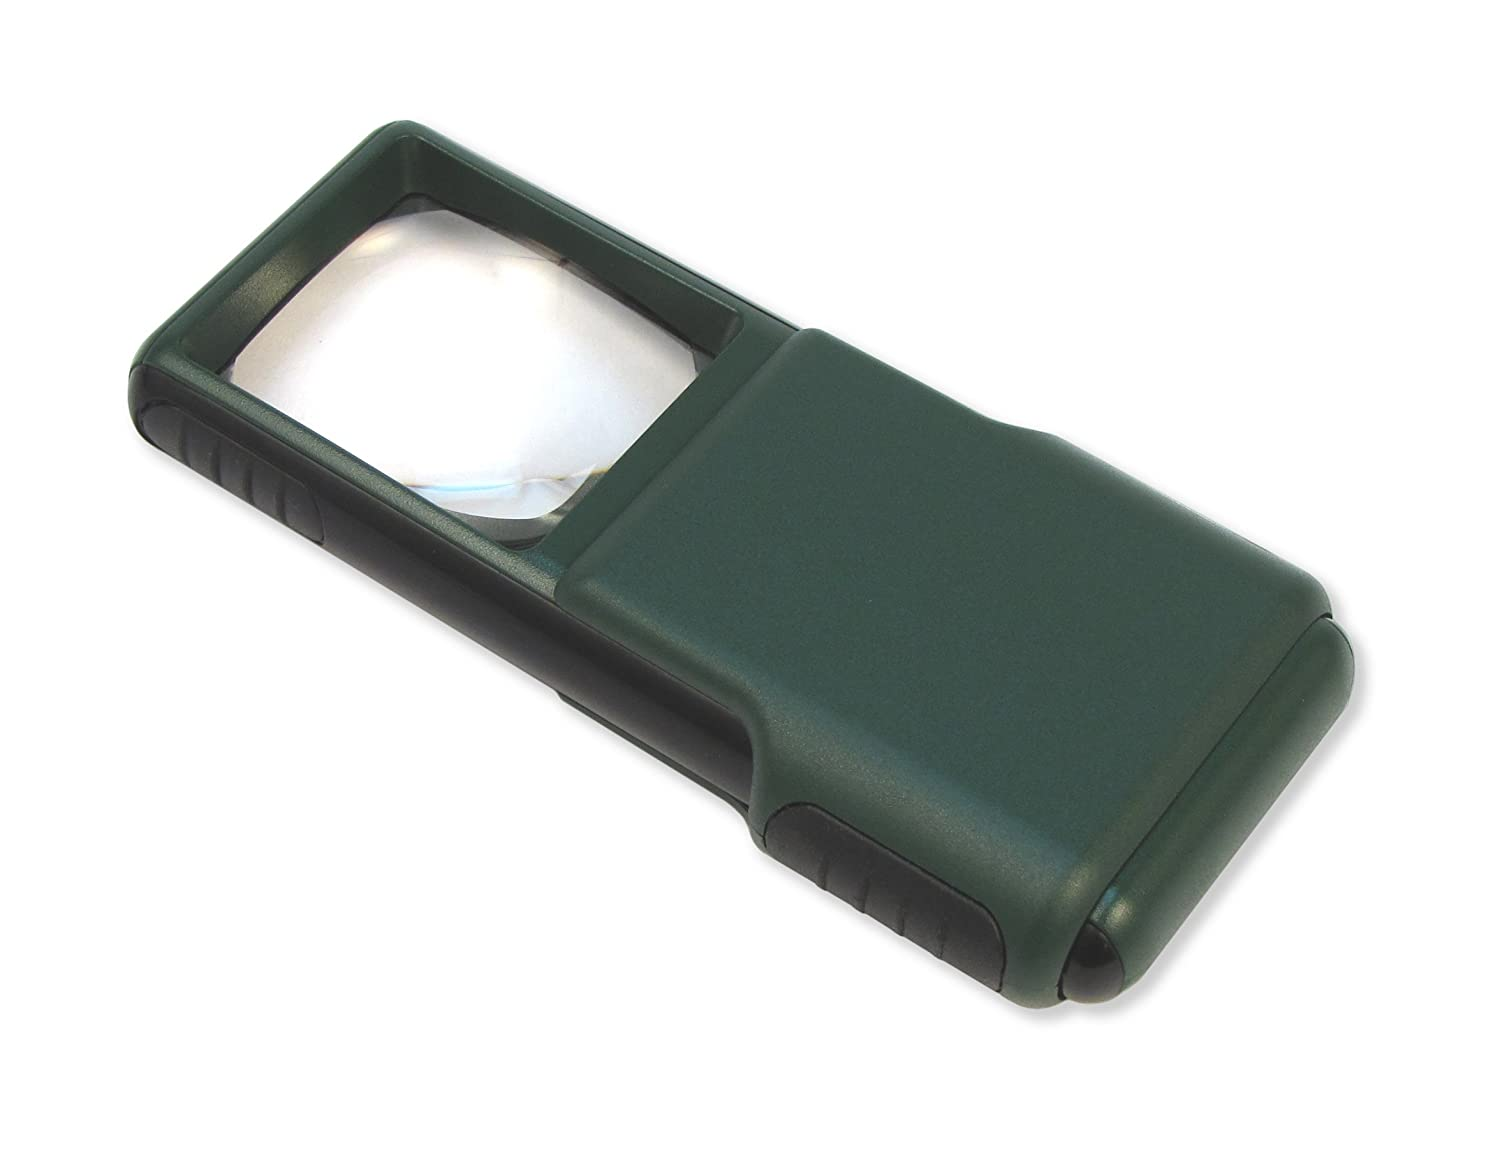 Carson MiniBrite 5x LED Lighted Slide Out Aspheric Magnifier with Protective Sleeve